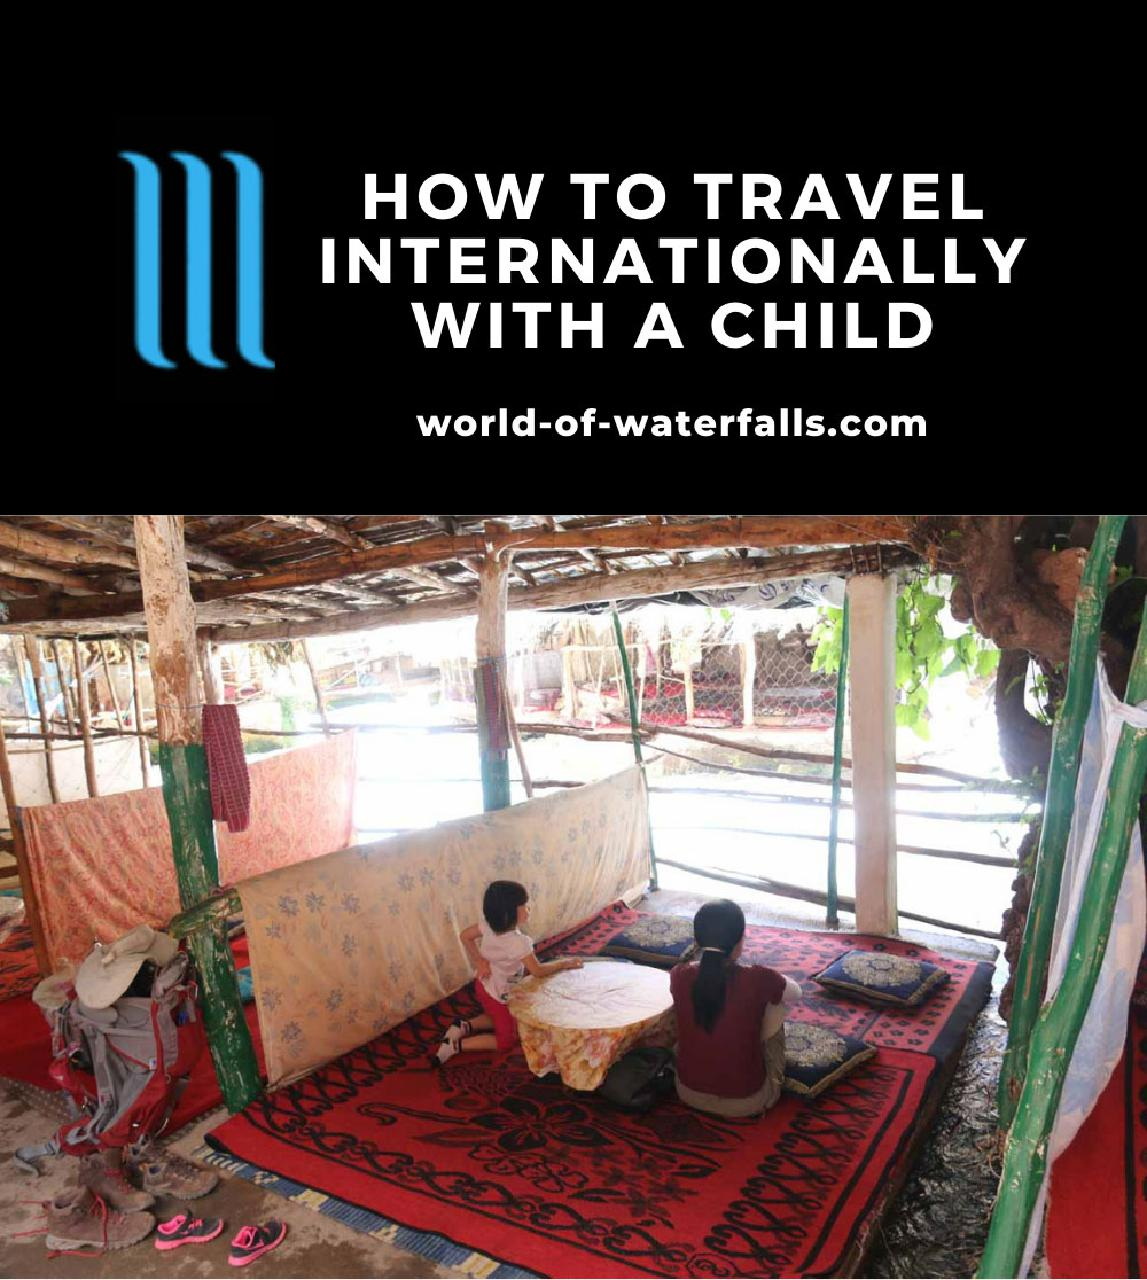 How to Travel Internationally with a Child